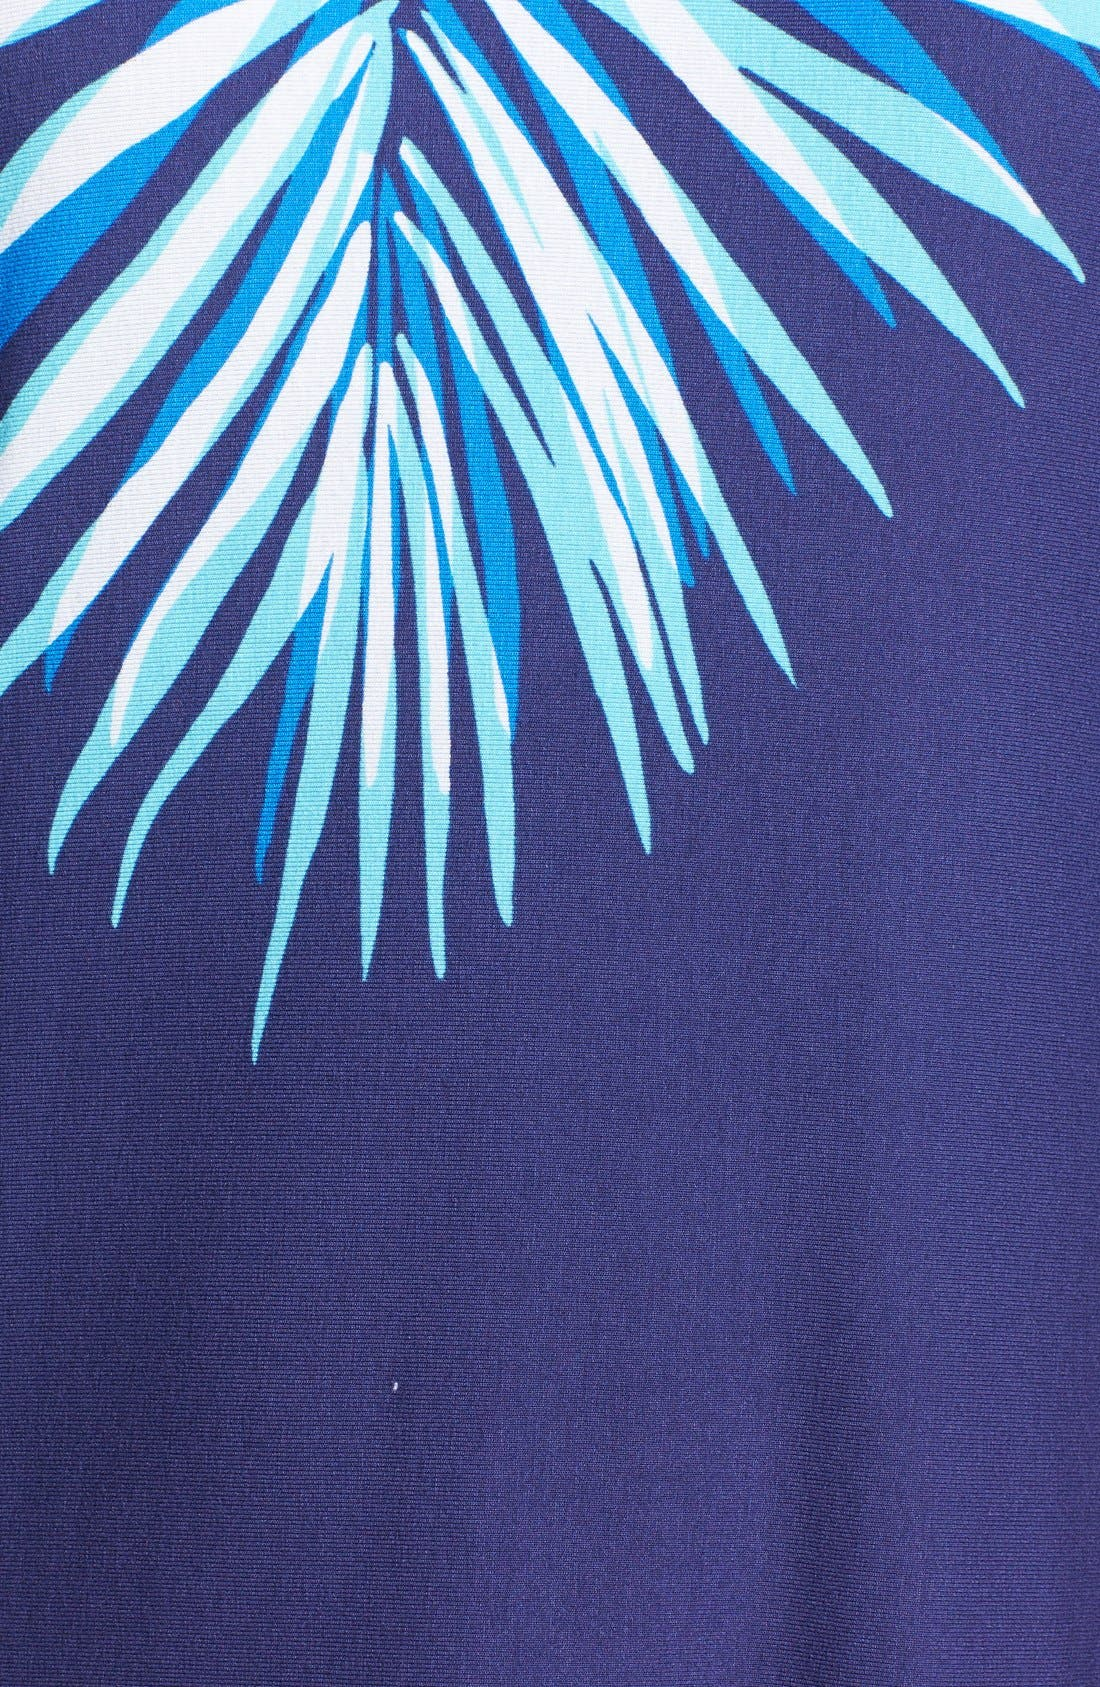 Alternate Image 3  - Tommy Bahama 'Bluefields Palm' Dress